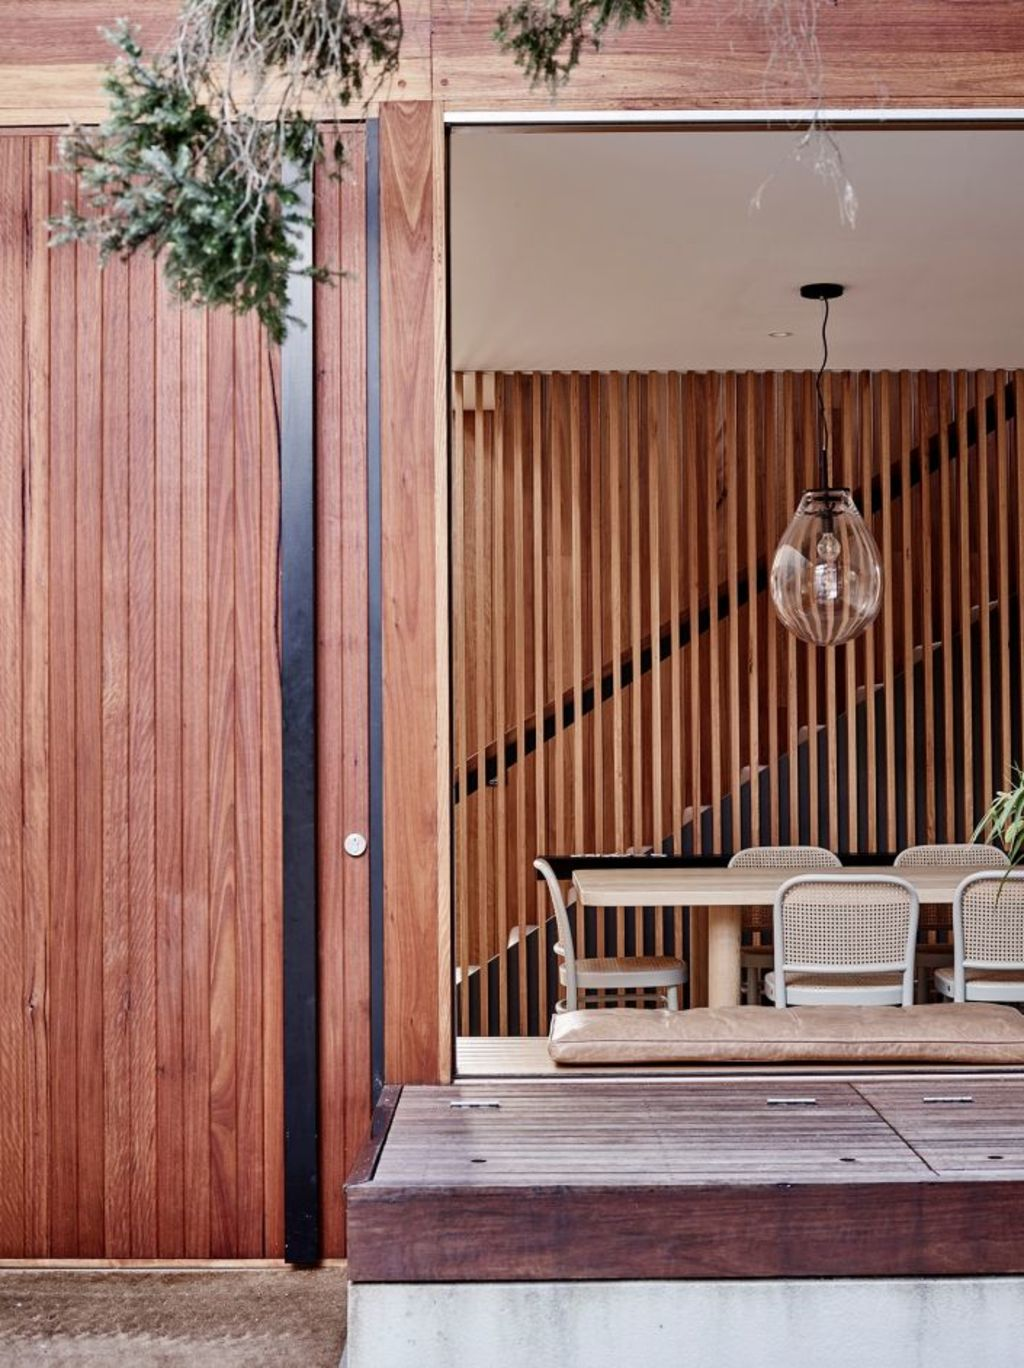 Deakin says a well-designed outdoor area can count as much as an additional living or interior entertaining space. Photo: Mark Roper. Architecture: Ben Pitman. Styling: Simone Haag